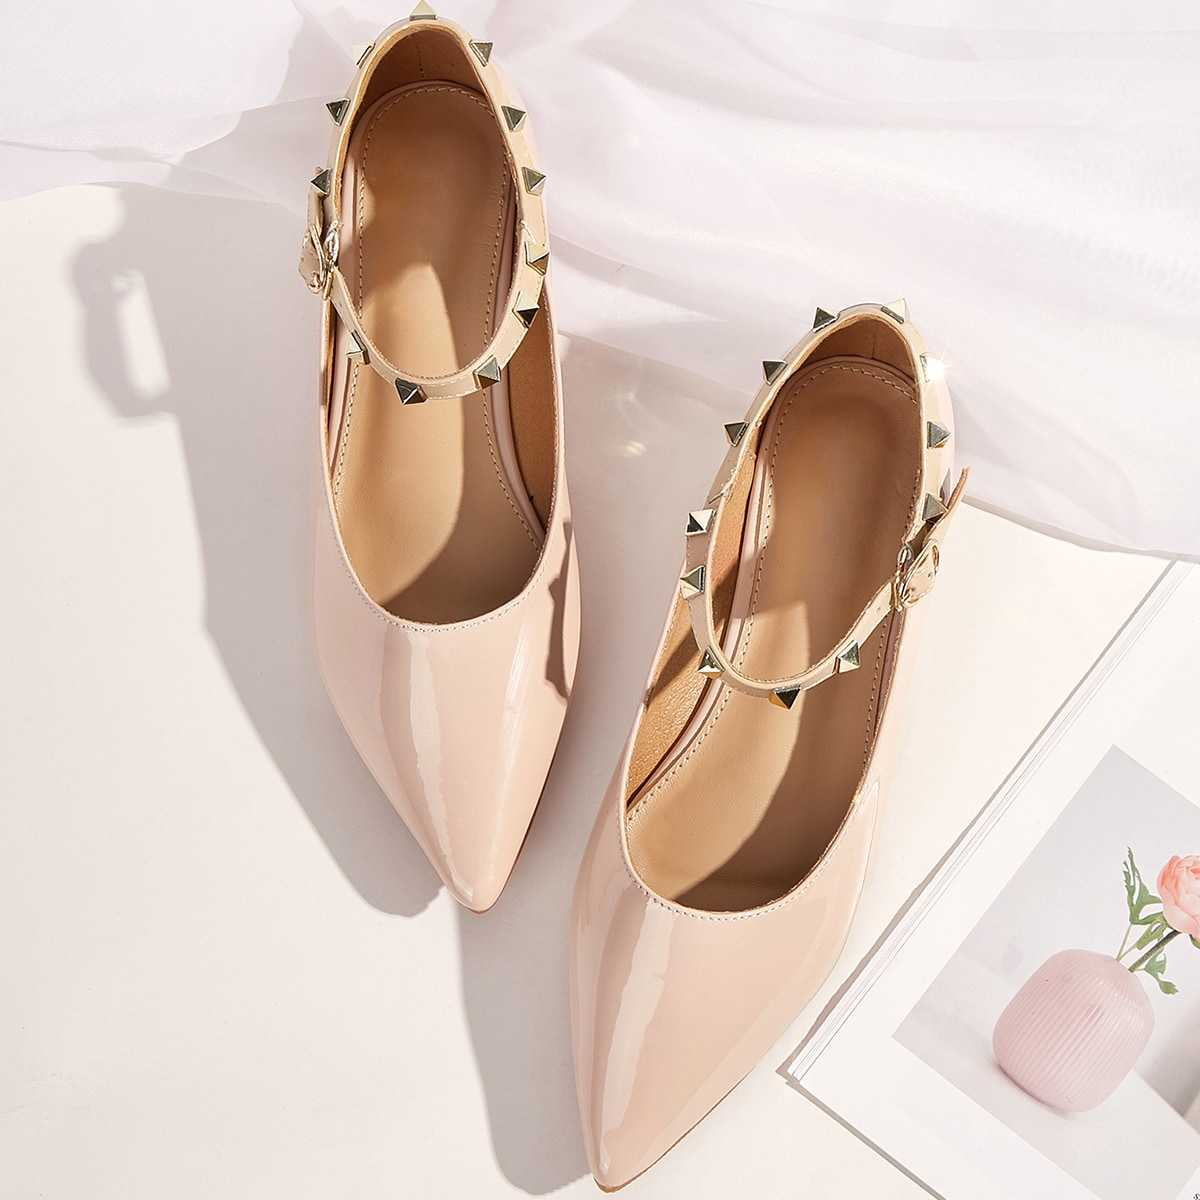 Point Toe Studded Buckle Strap Flats in Apricot by ROMWE on GOOFASH